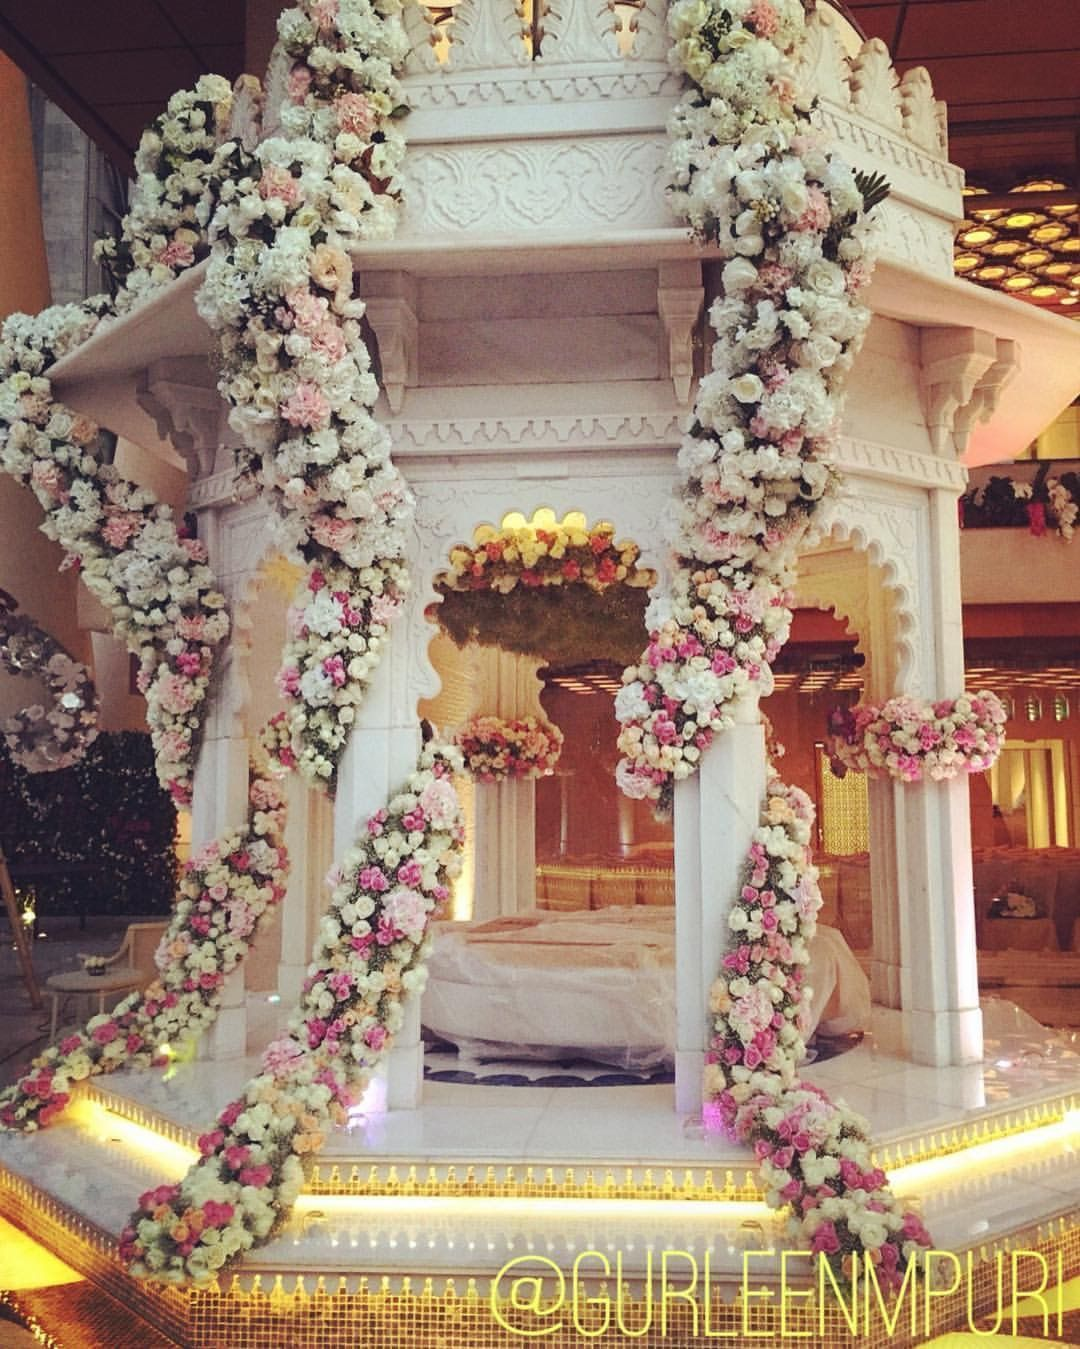 Wedding decor images  A magical mandir accenting with beautiful floral decor Wedding Decor